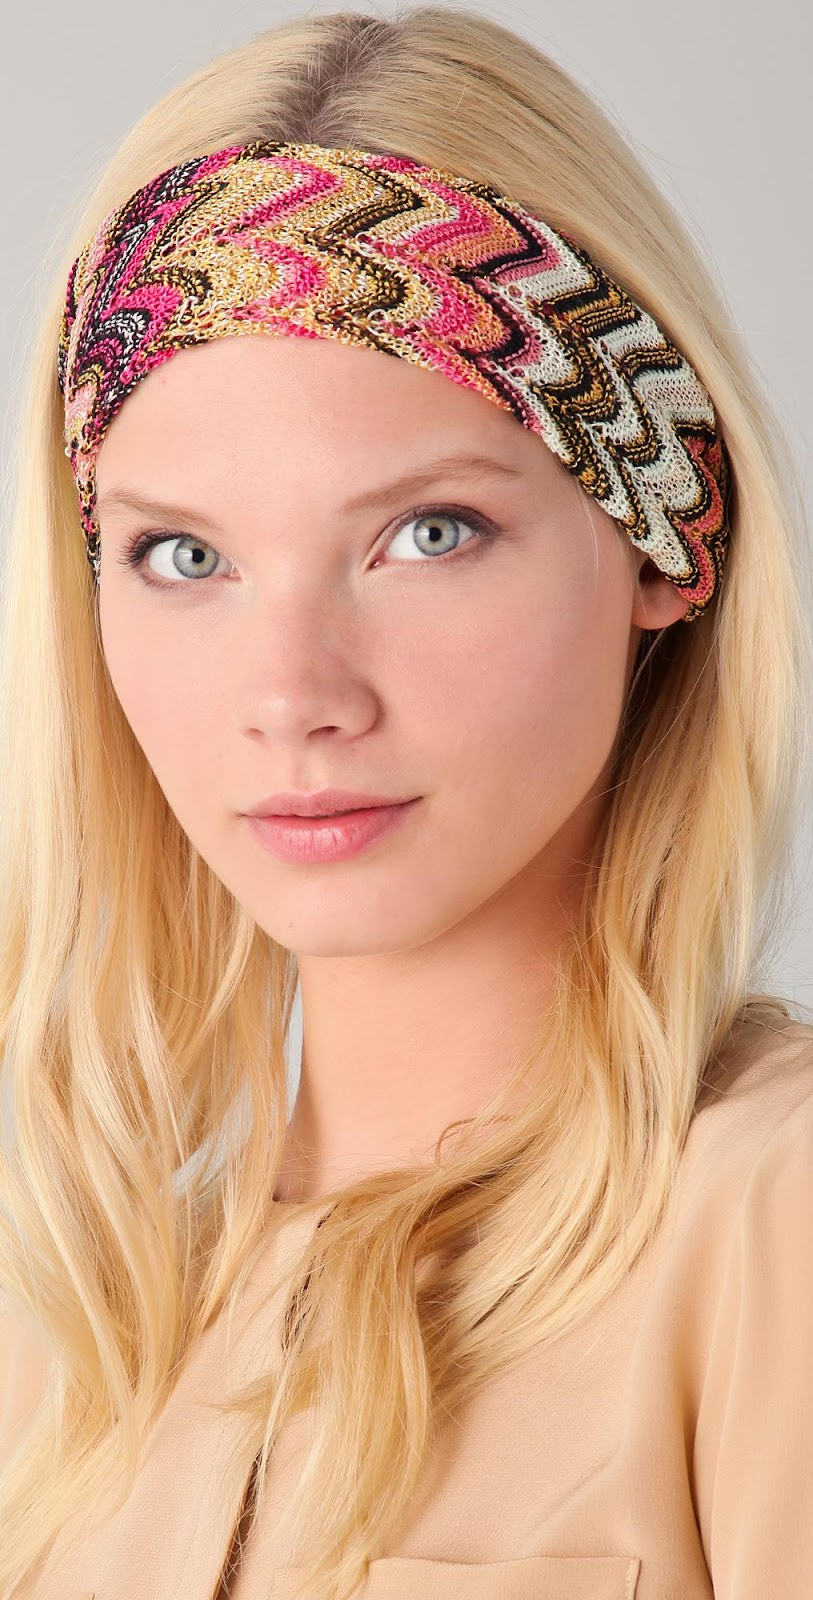 Teenage Glam: Summer hair accessories